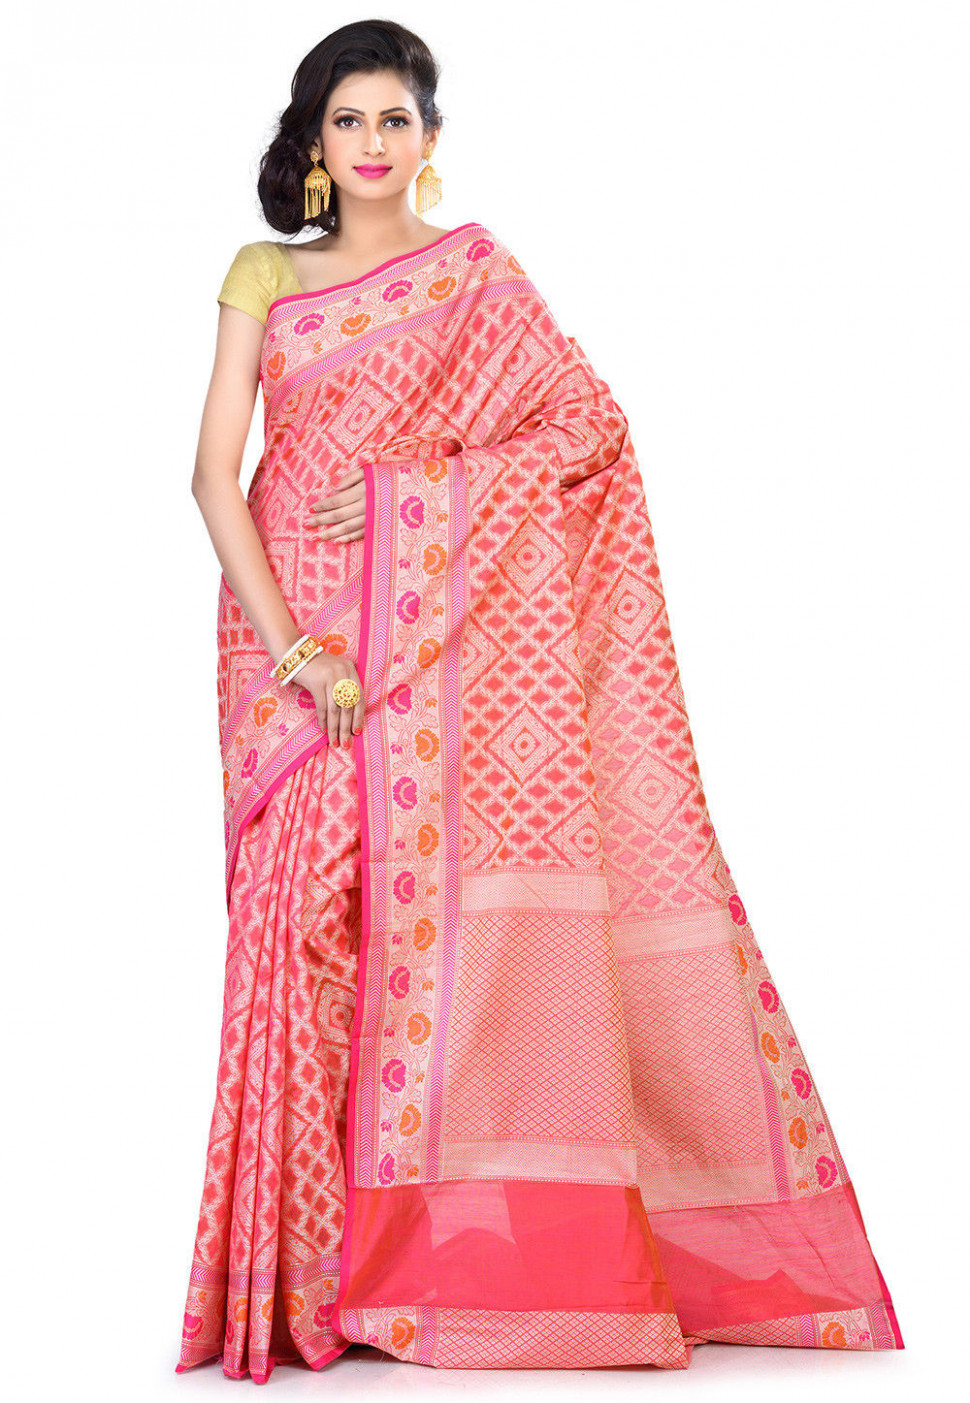 Banarasi Chanderi Silk Saree in Pink : SFKA2142